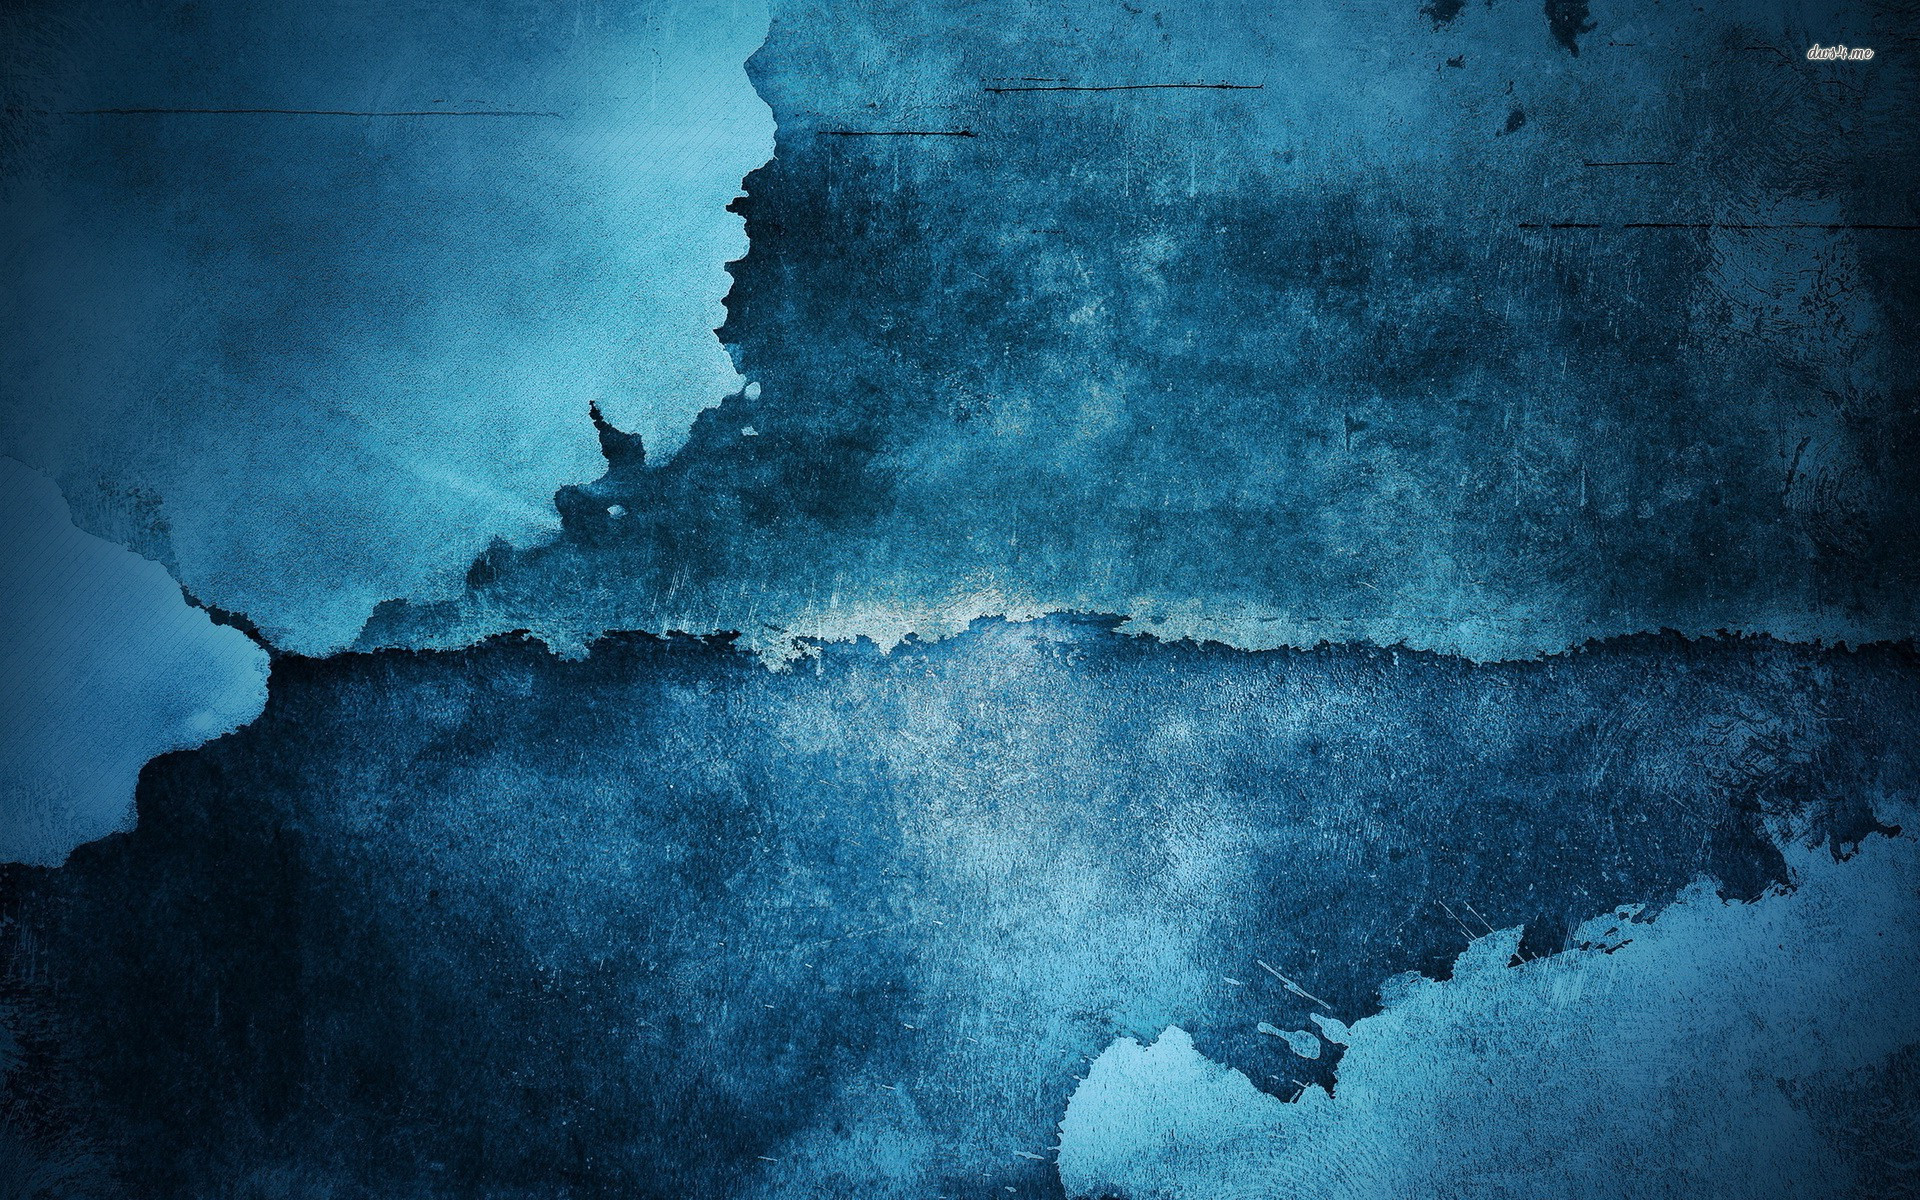 Old paper wallpaper 51 images - White grunge background 1920x1080 ...